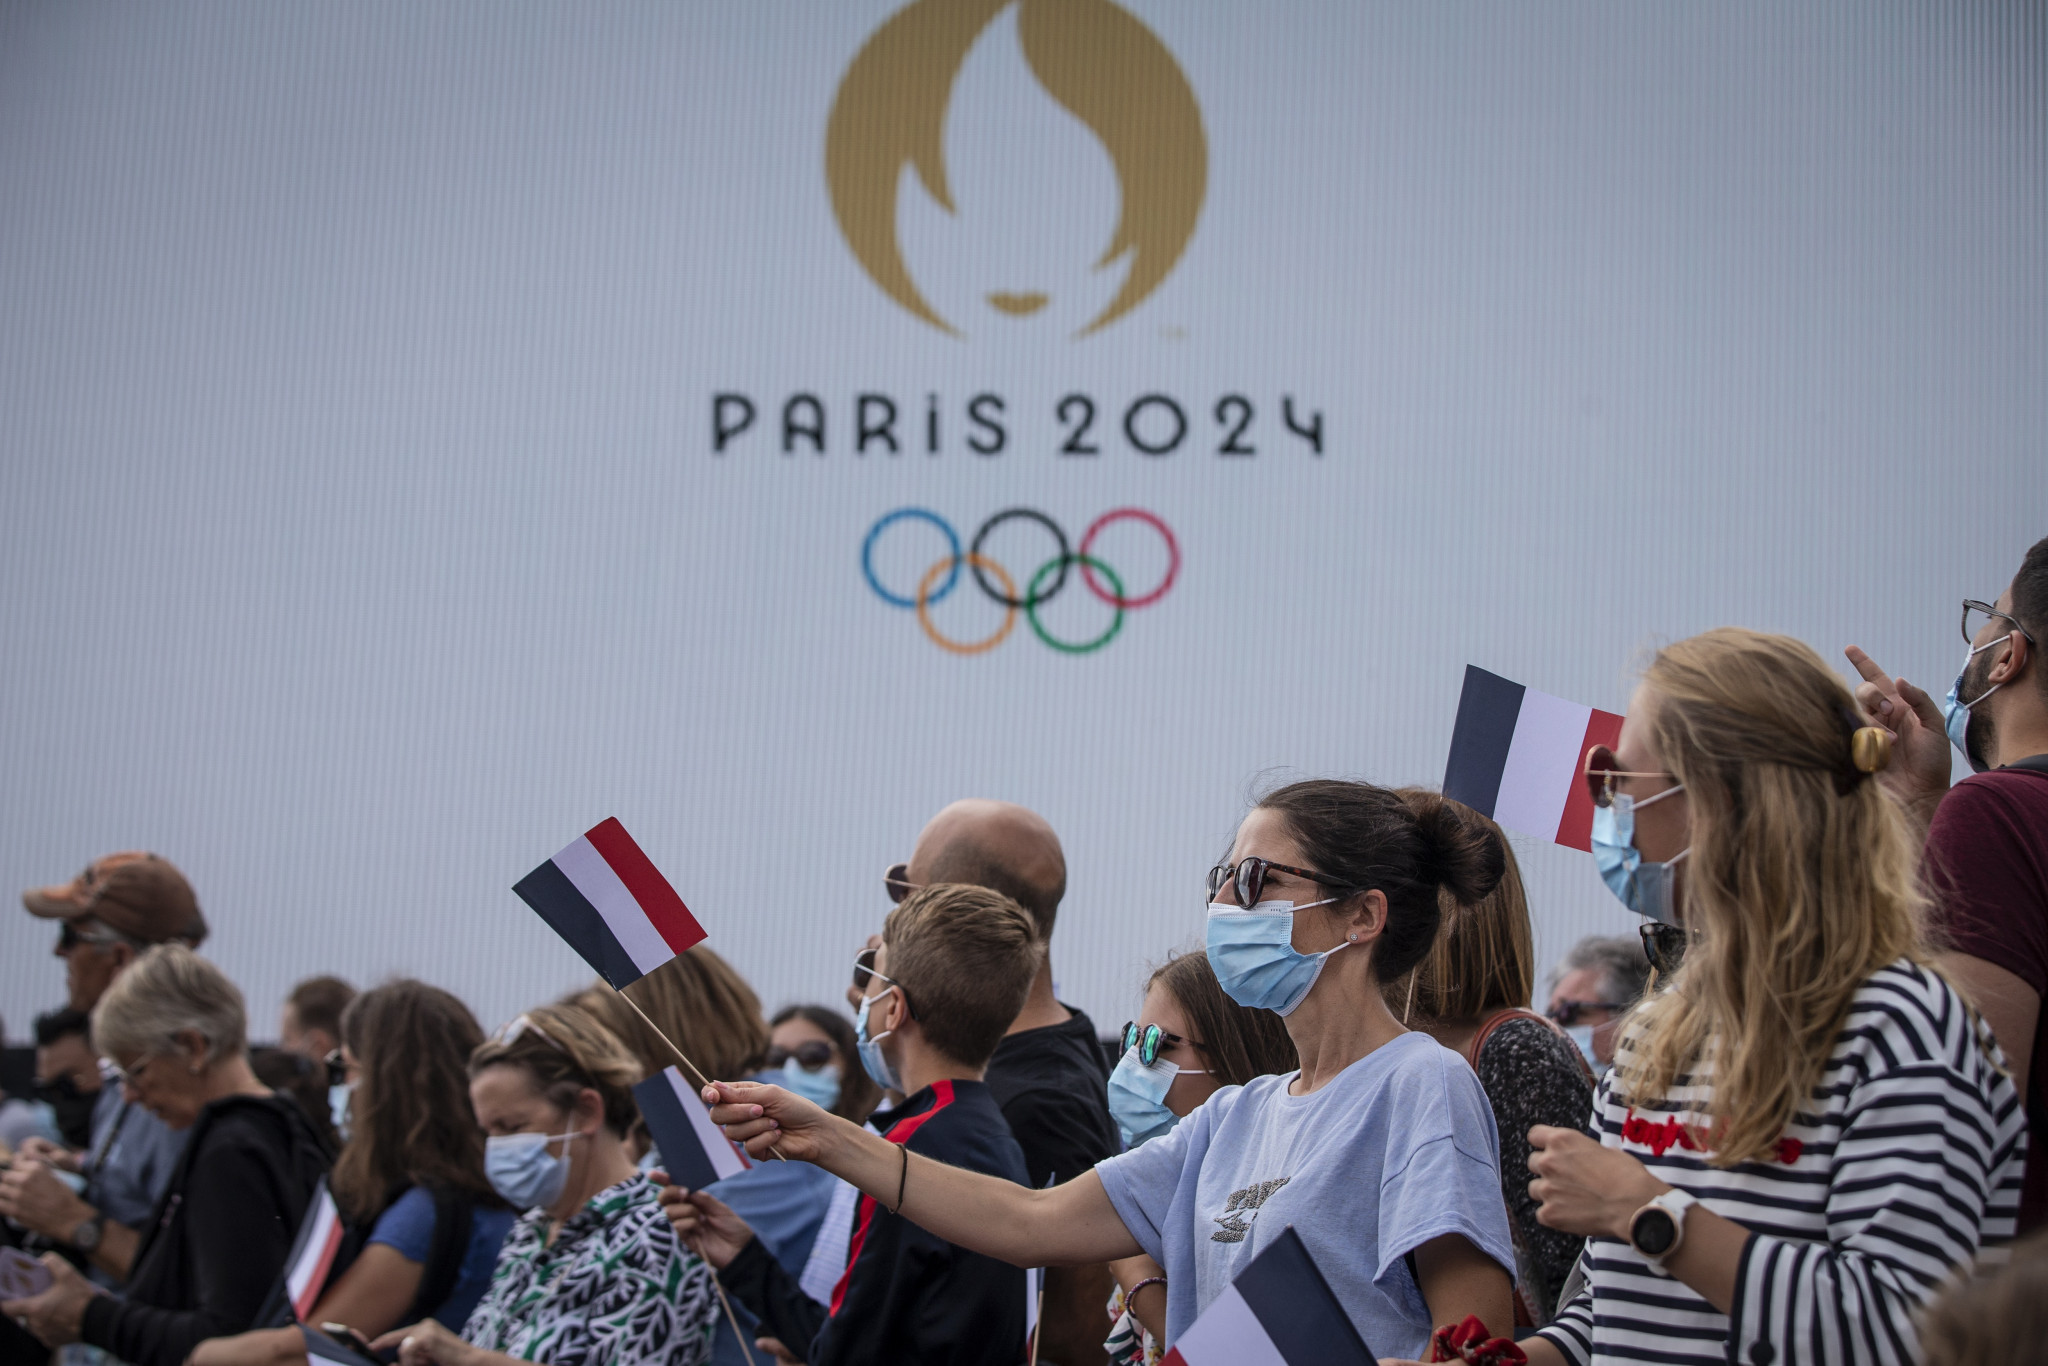 Paris 2024 is planning to start drawing up the Torch Relay route later this year ©Getty Images